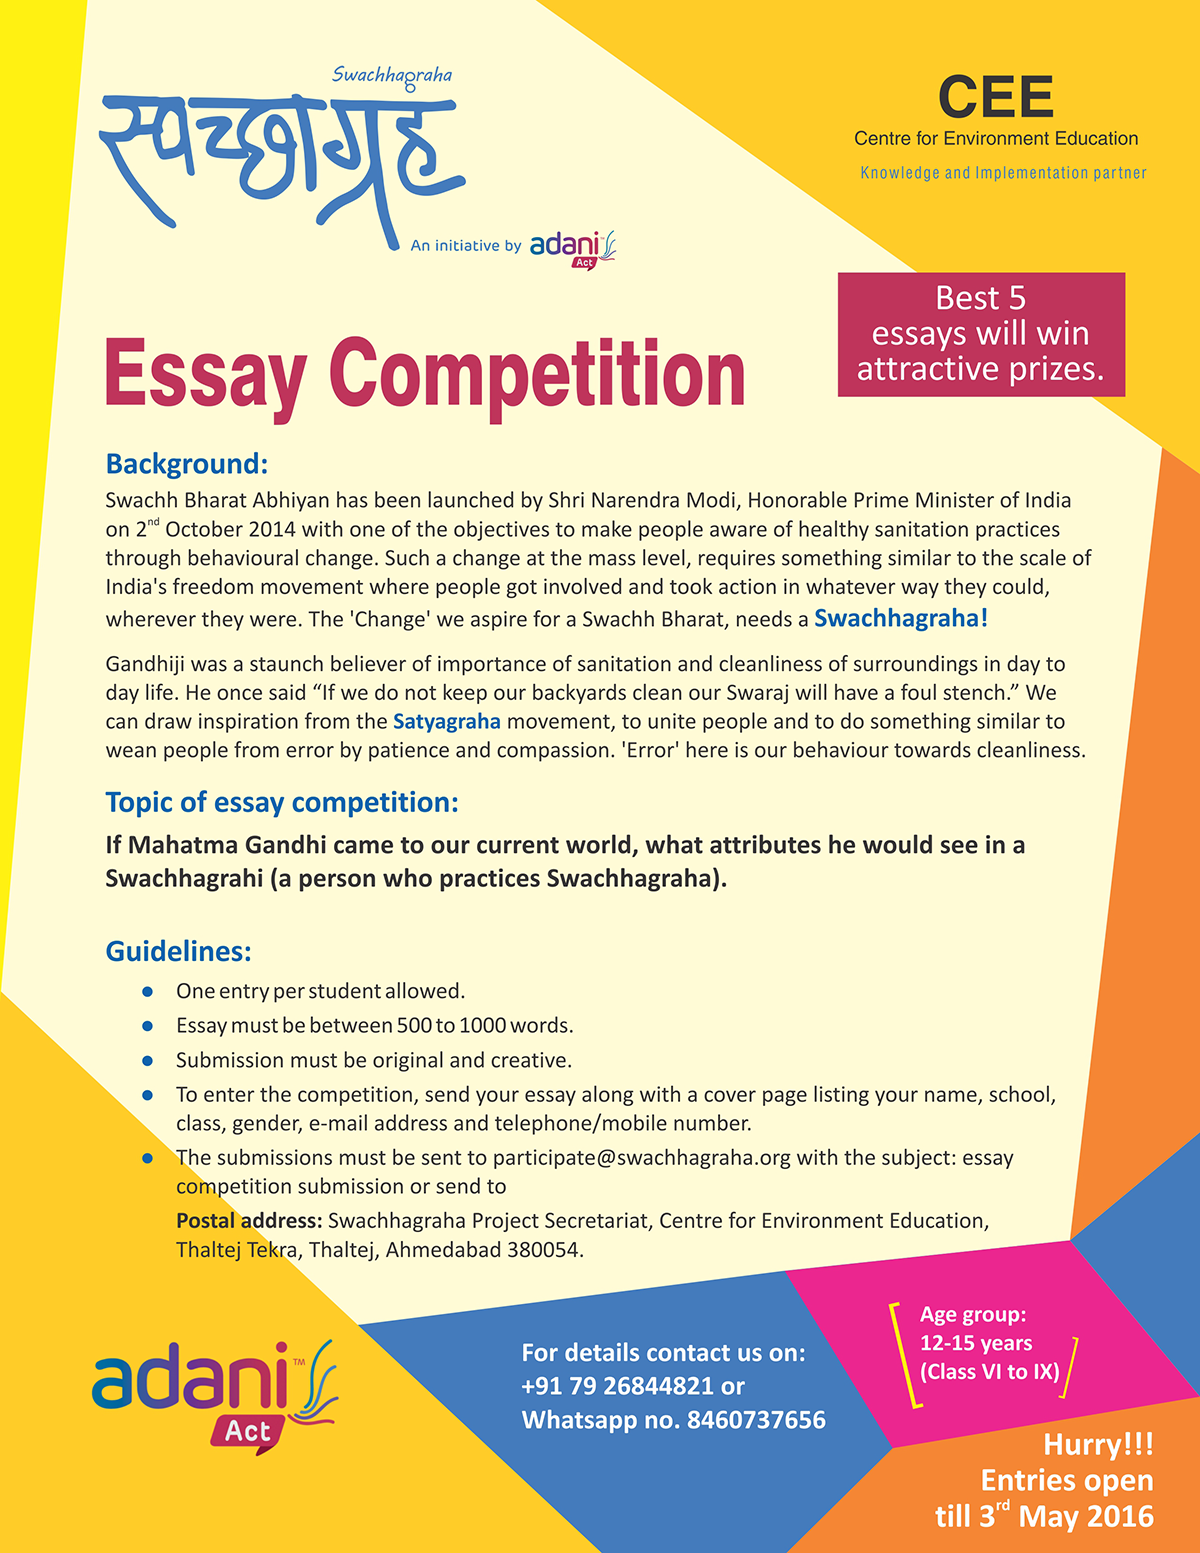 011 20180129171946essay20competition Essay About Cleanliness In School Phenomenal On Premises Persuasive Toilets Full